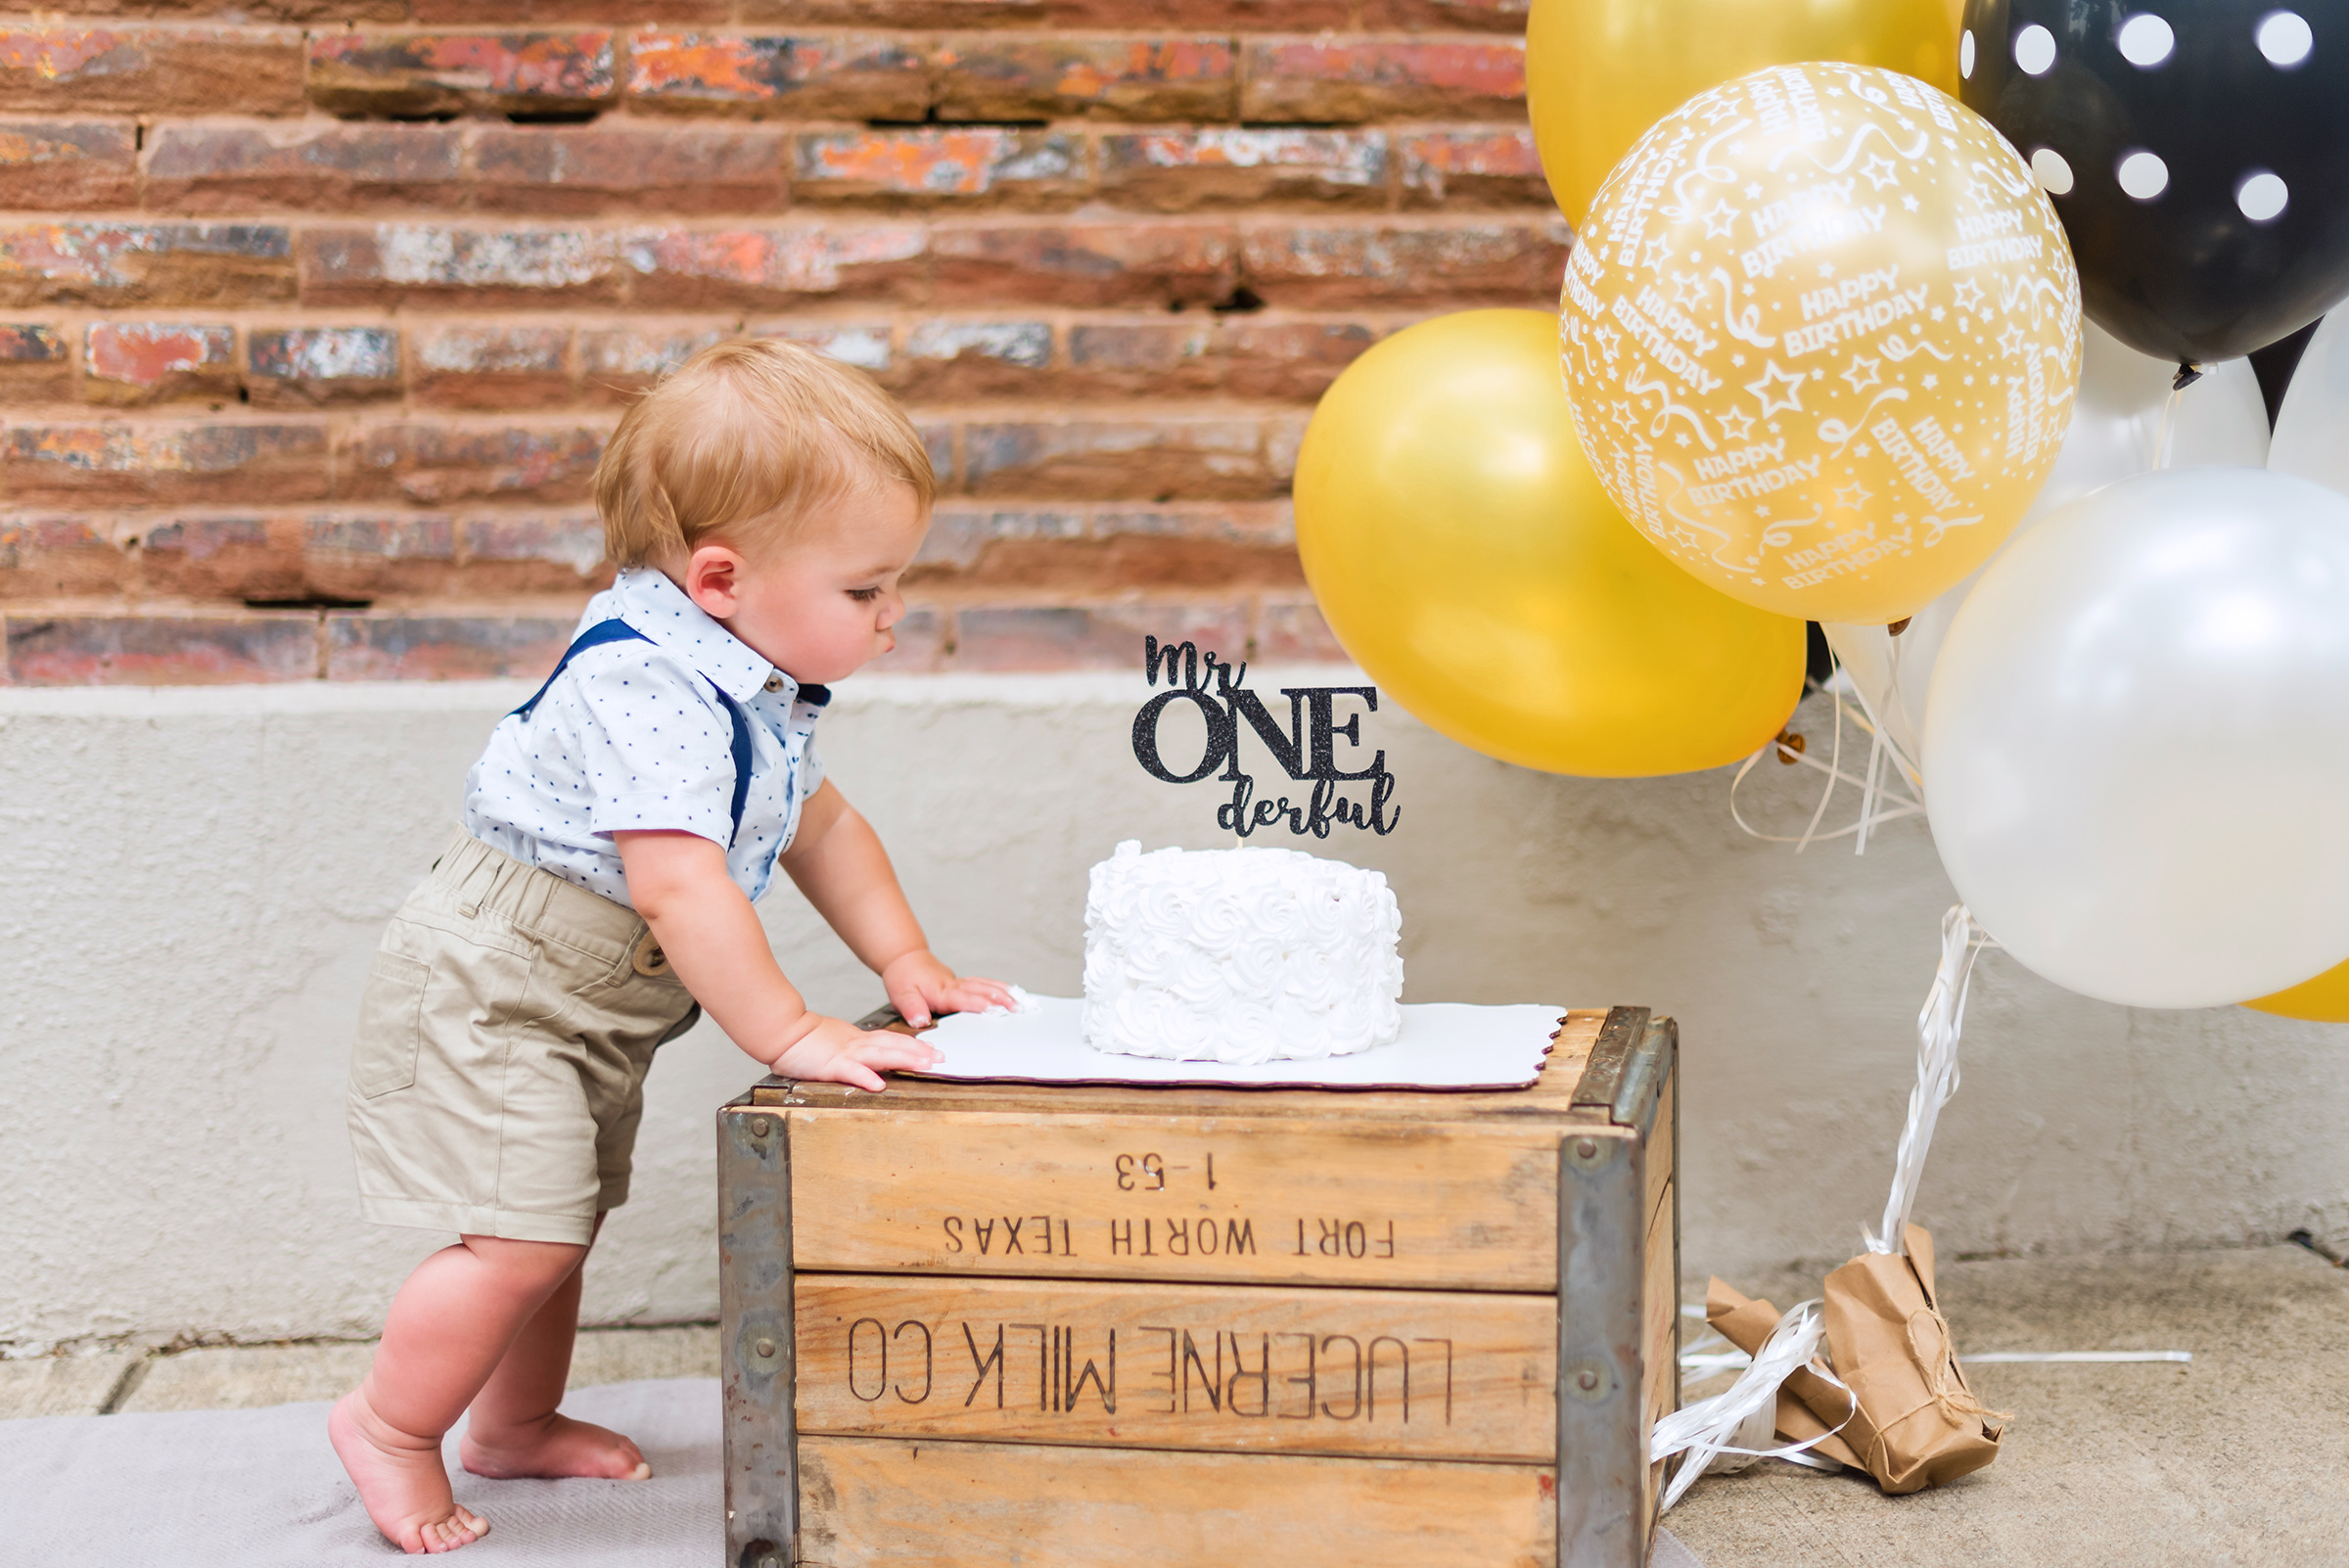 kennett-family-declan-cake-smash-2019-9.jpg